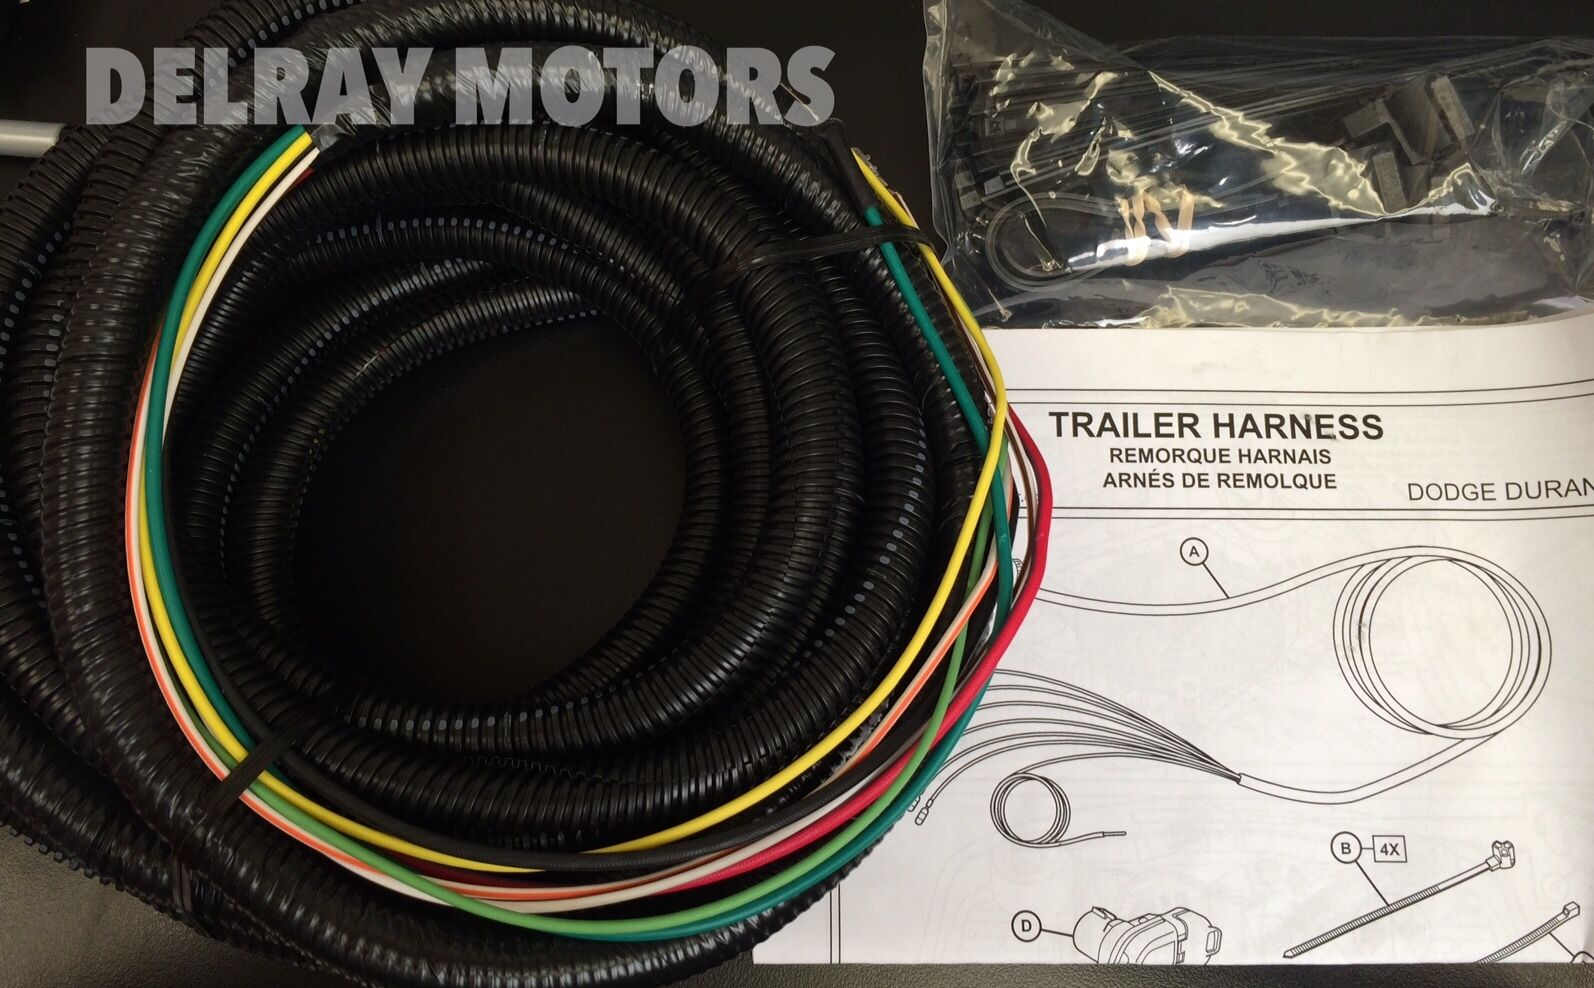 Trailer Hitch Wiring Harness Mopar 2014 2018 Dodge Durango Brand 90 Jeep Cherokee For 1 Of 1only 4 Available